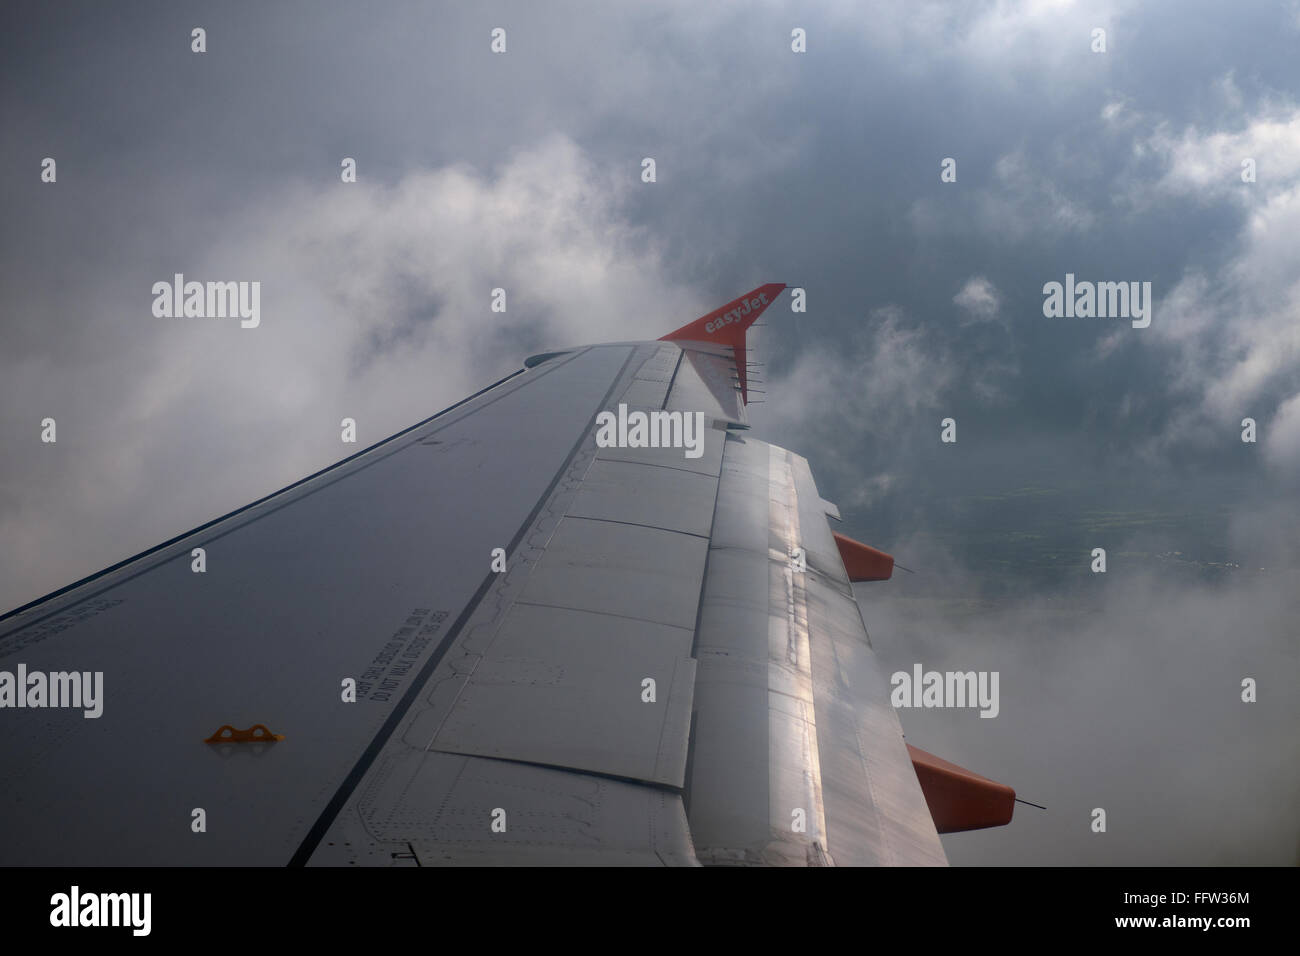 Easyjet wing tip in flight through clouds - Stock Image